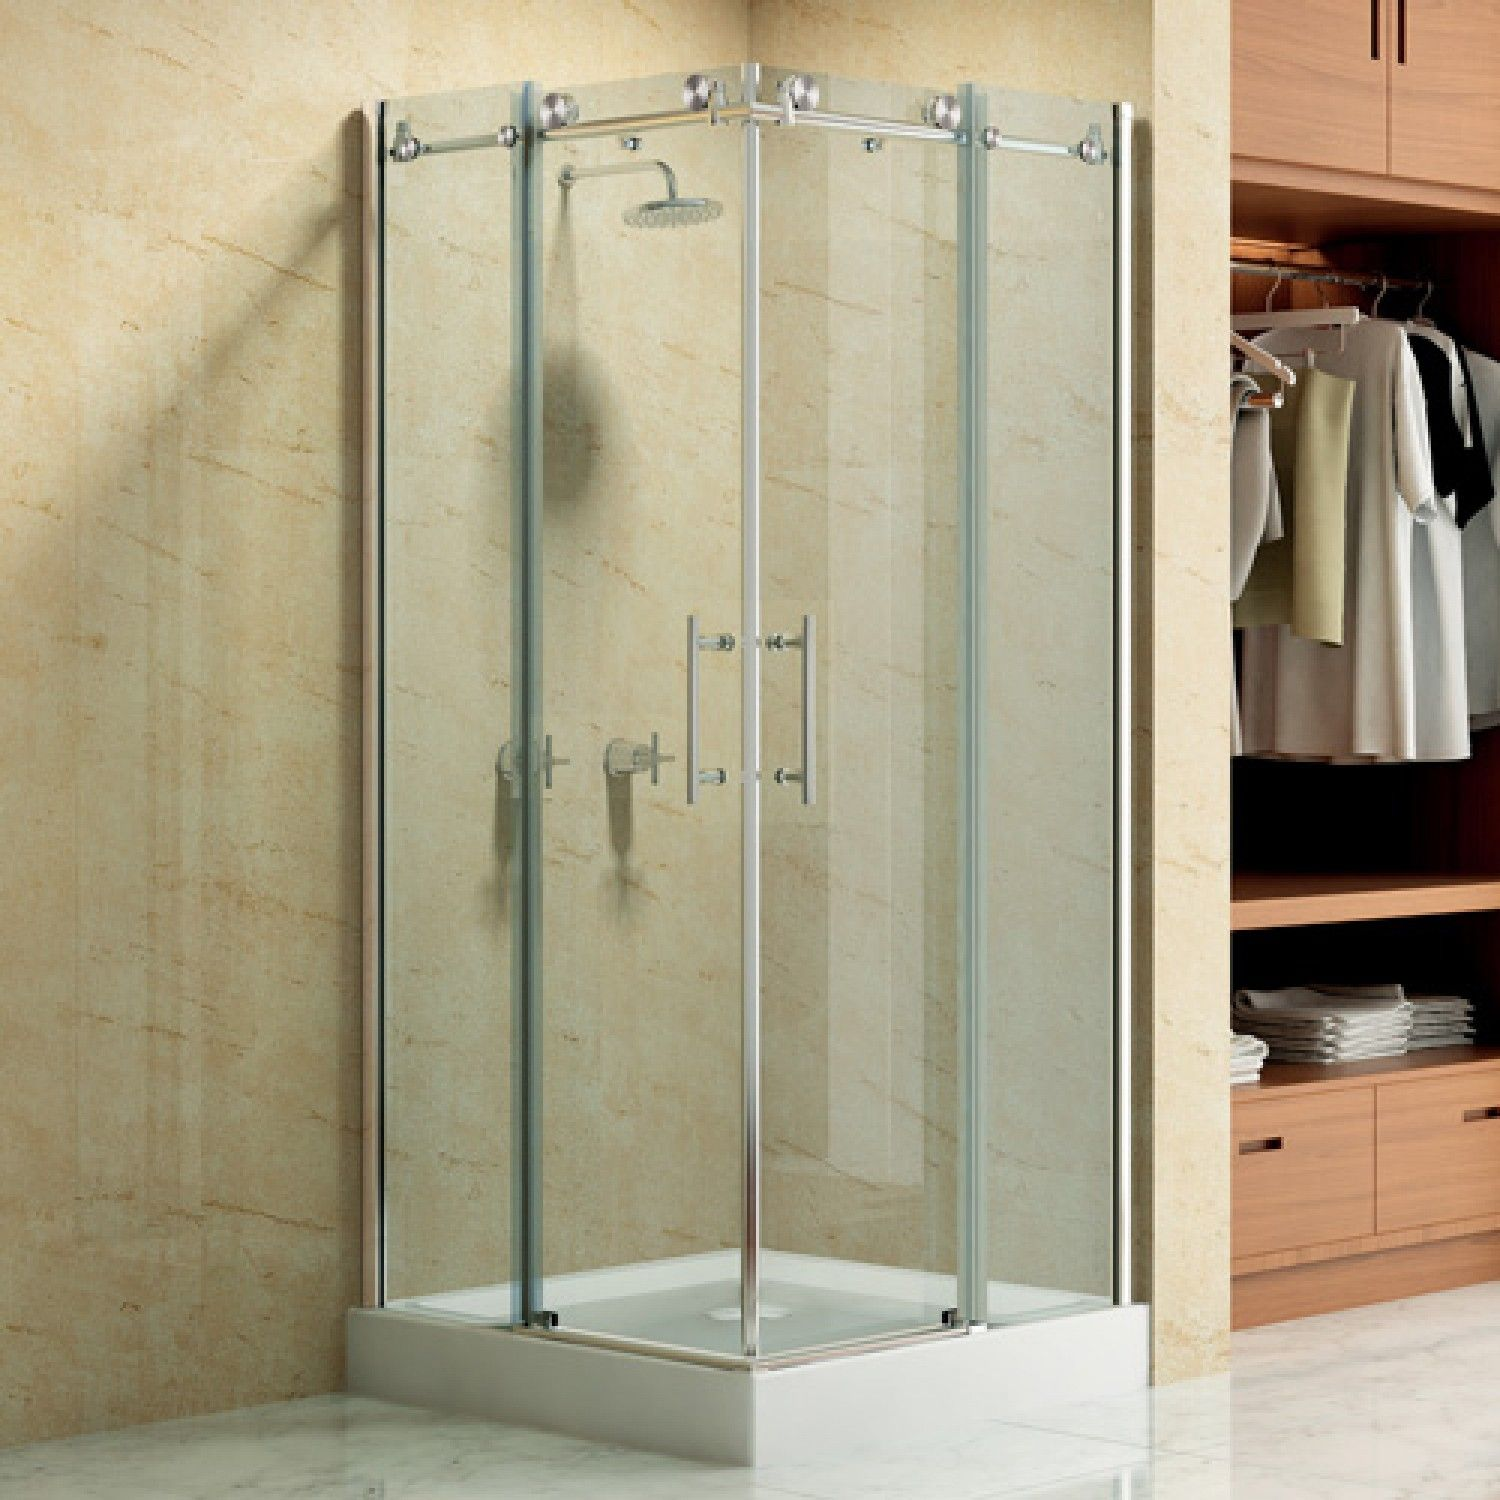 36 X 36 Square Frameless Corner Shower Enclosure With Dual